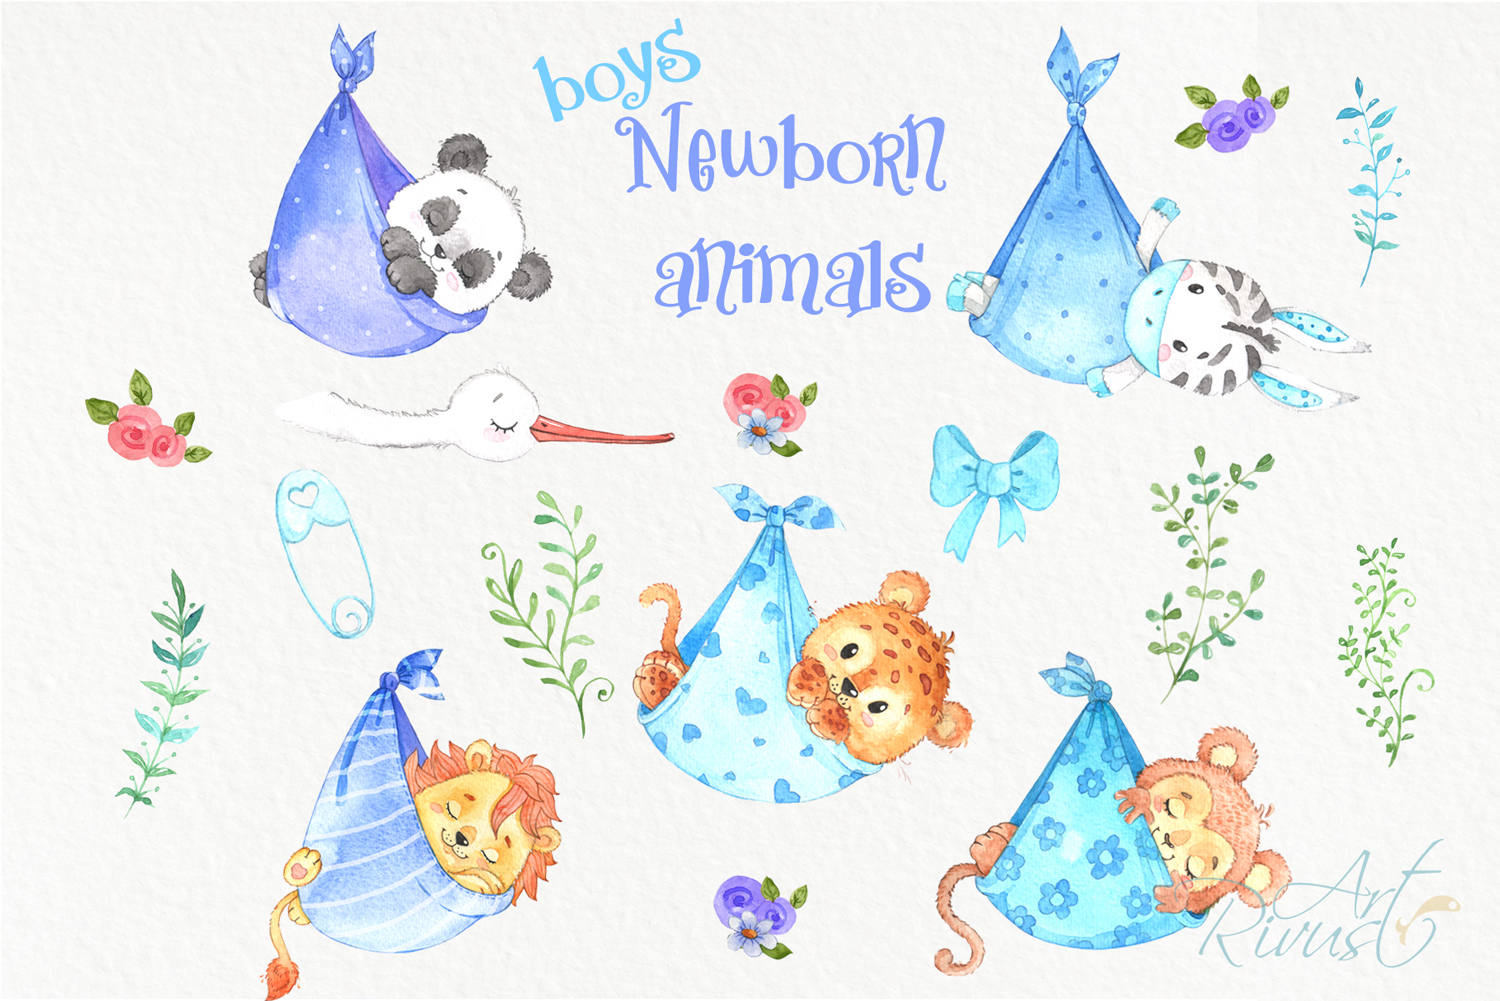 It's a boy Newborn animals clipart PNG download. African Saf example image 7